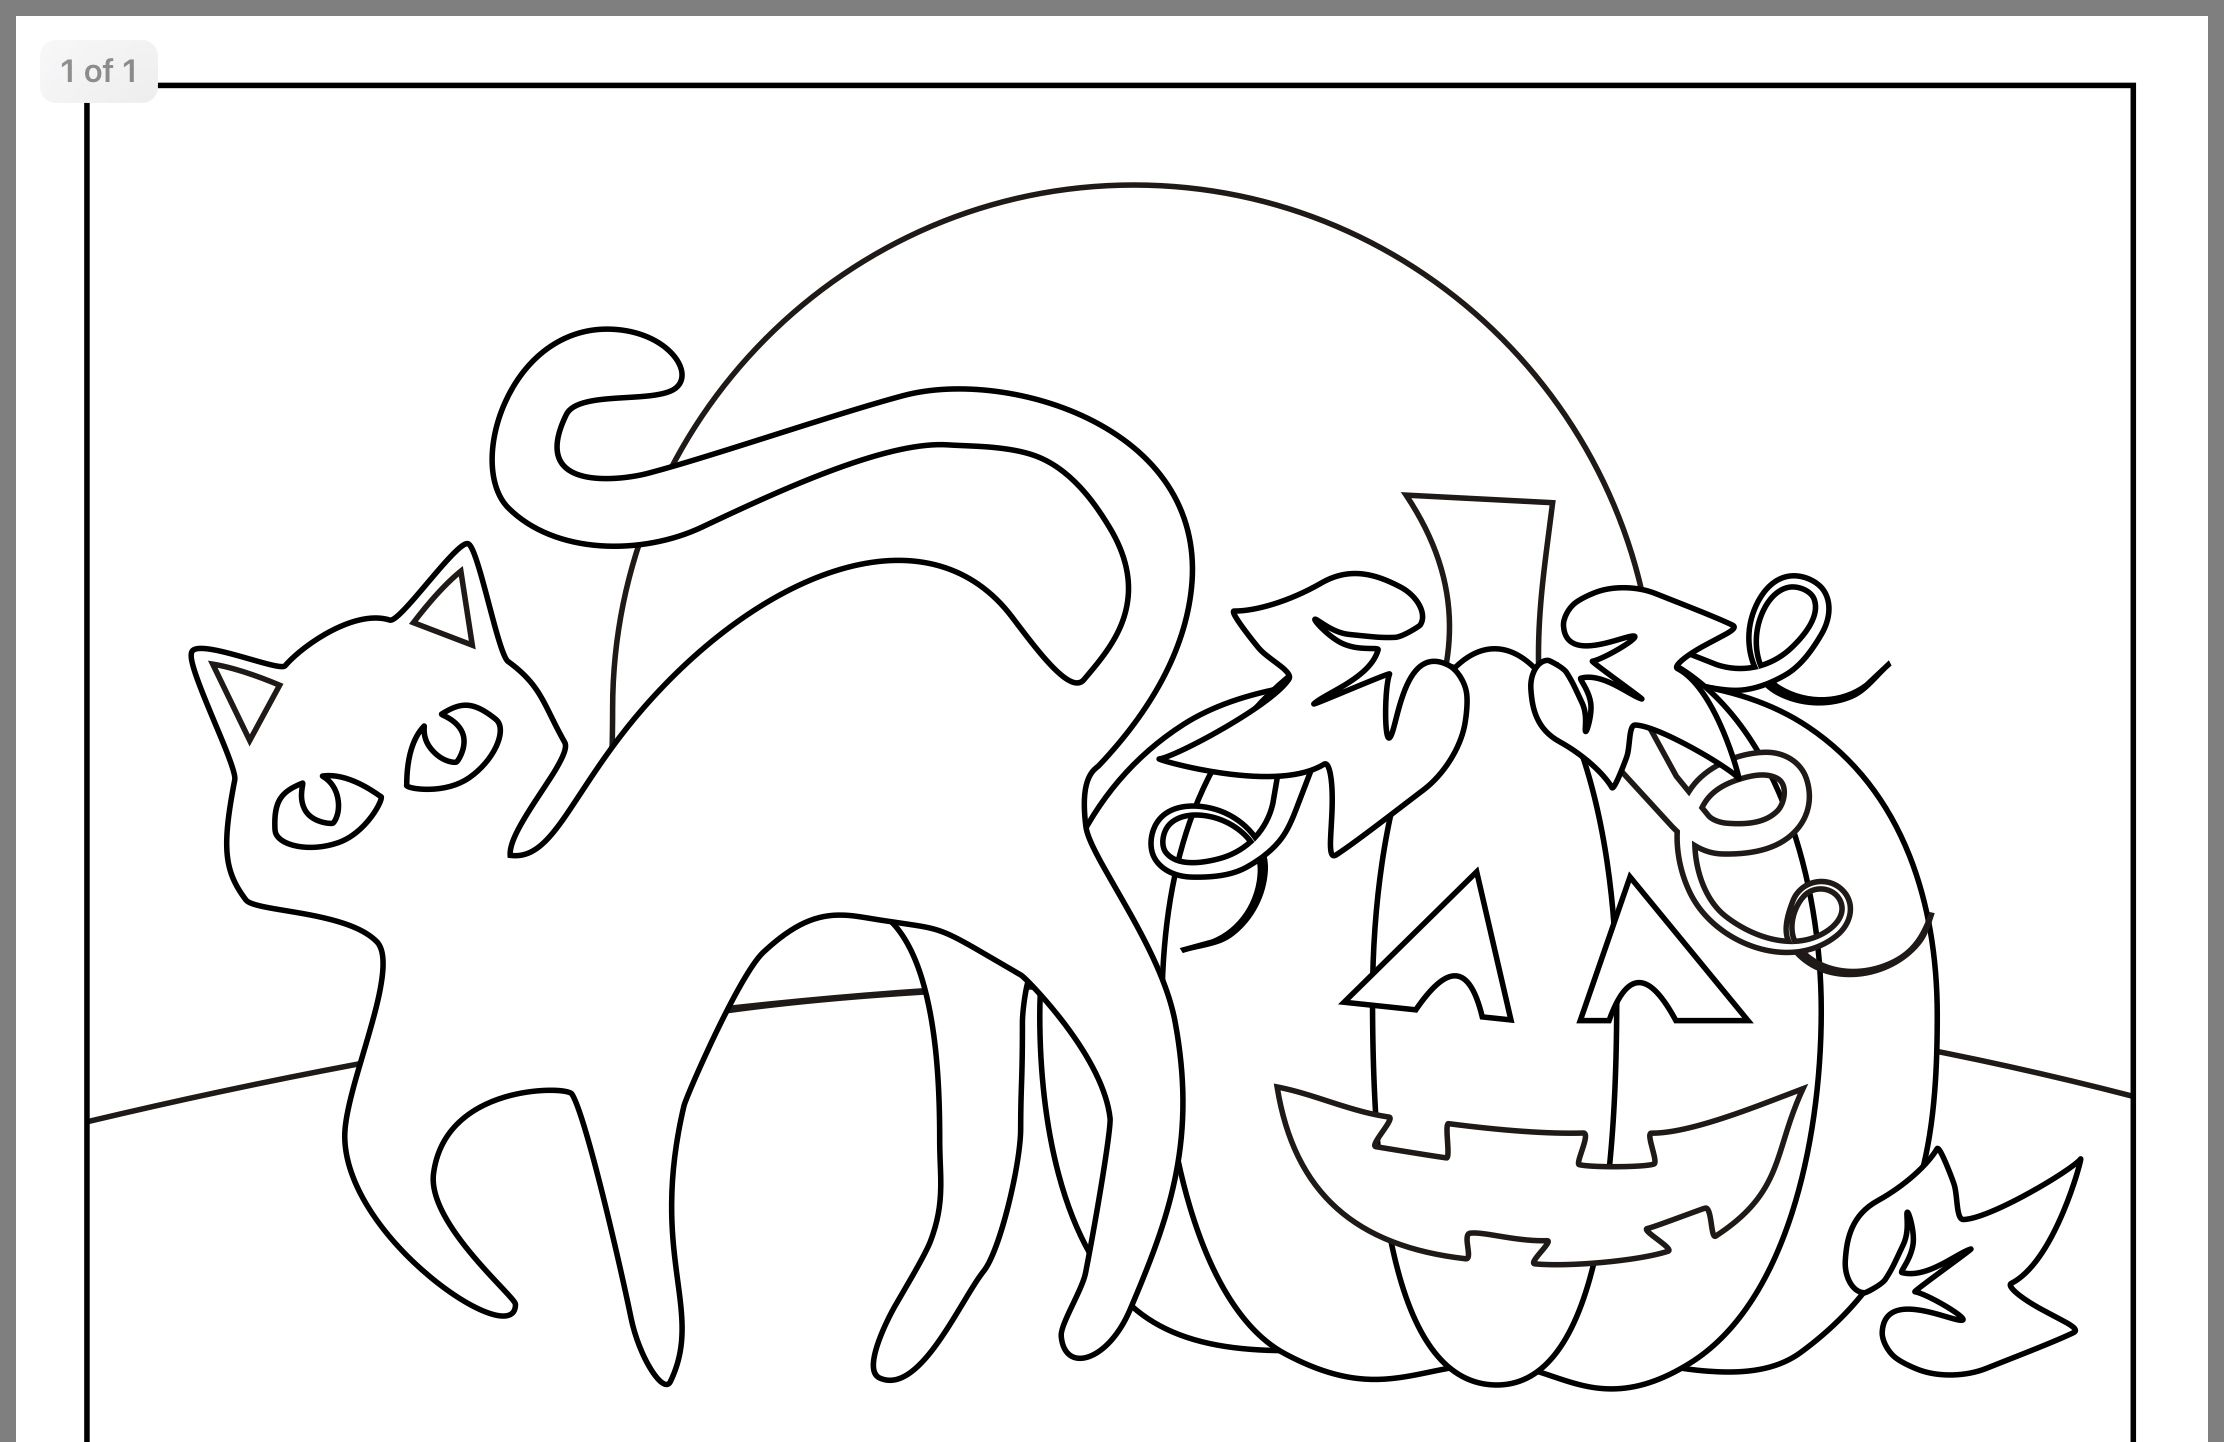 Pin by Kathleen Dawe on Coloring pages Free halloween